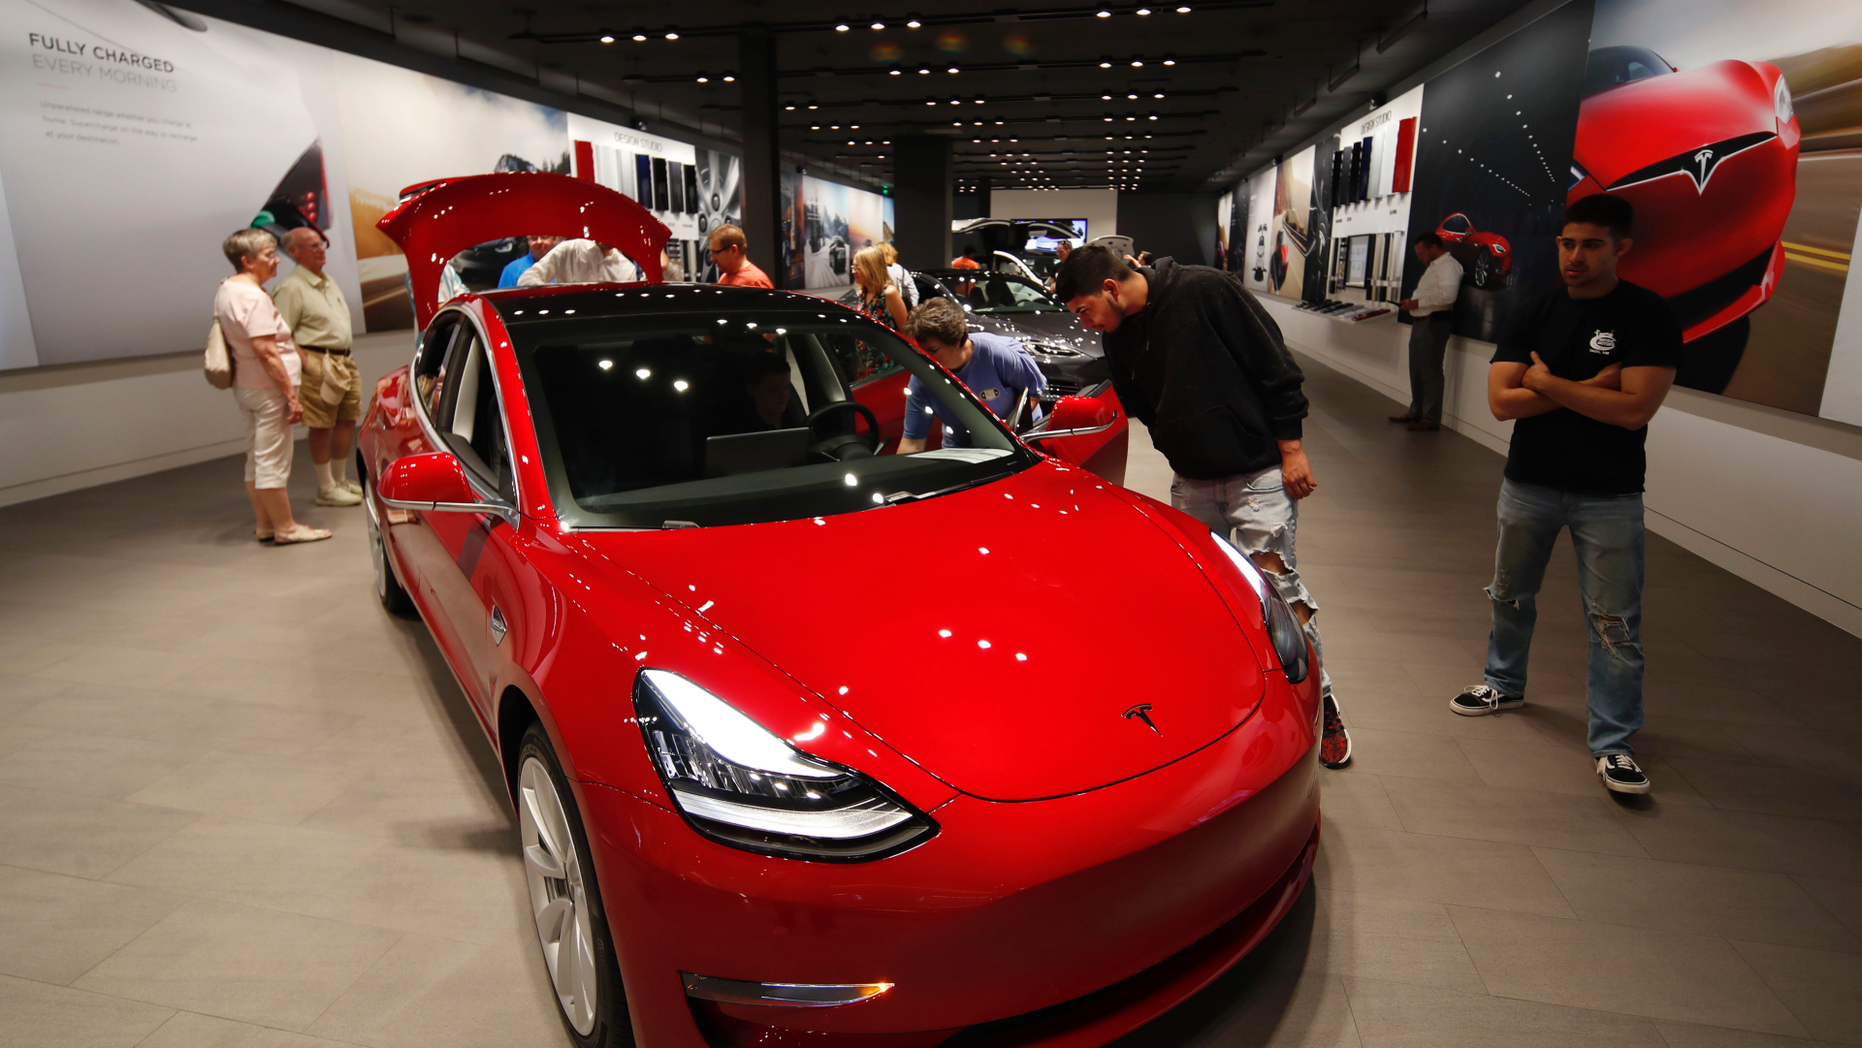 Tesla Abandons Last Week's Decision to Close Stores, Will Increase Prices Instead